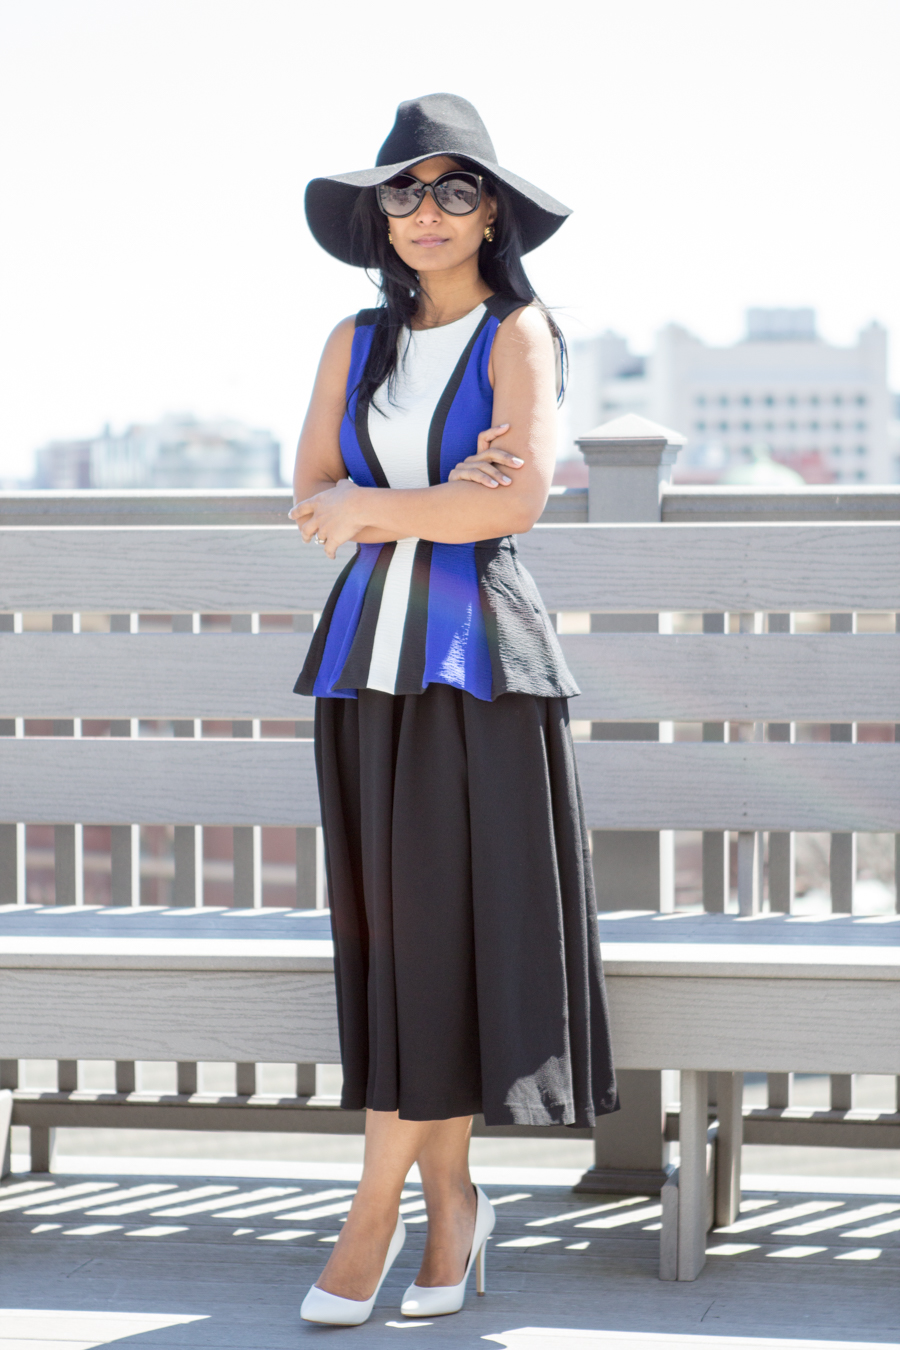 circle skirt, peplum top, spring fashion, white pumps, charles david, color-blocked, bright blue, black floppy hat, sporty chic, minimalist, spring lookbook, petite fashion, mom style, mom fashion, boston street style, summer